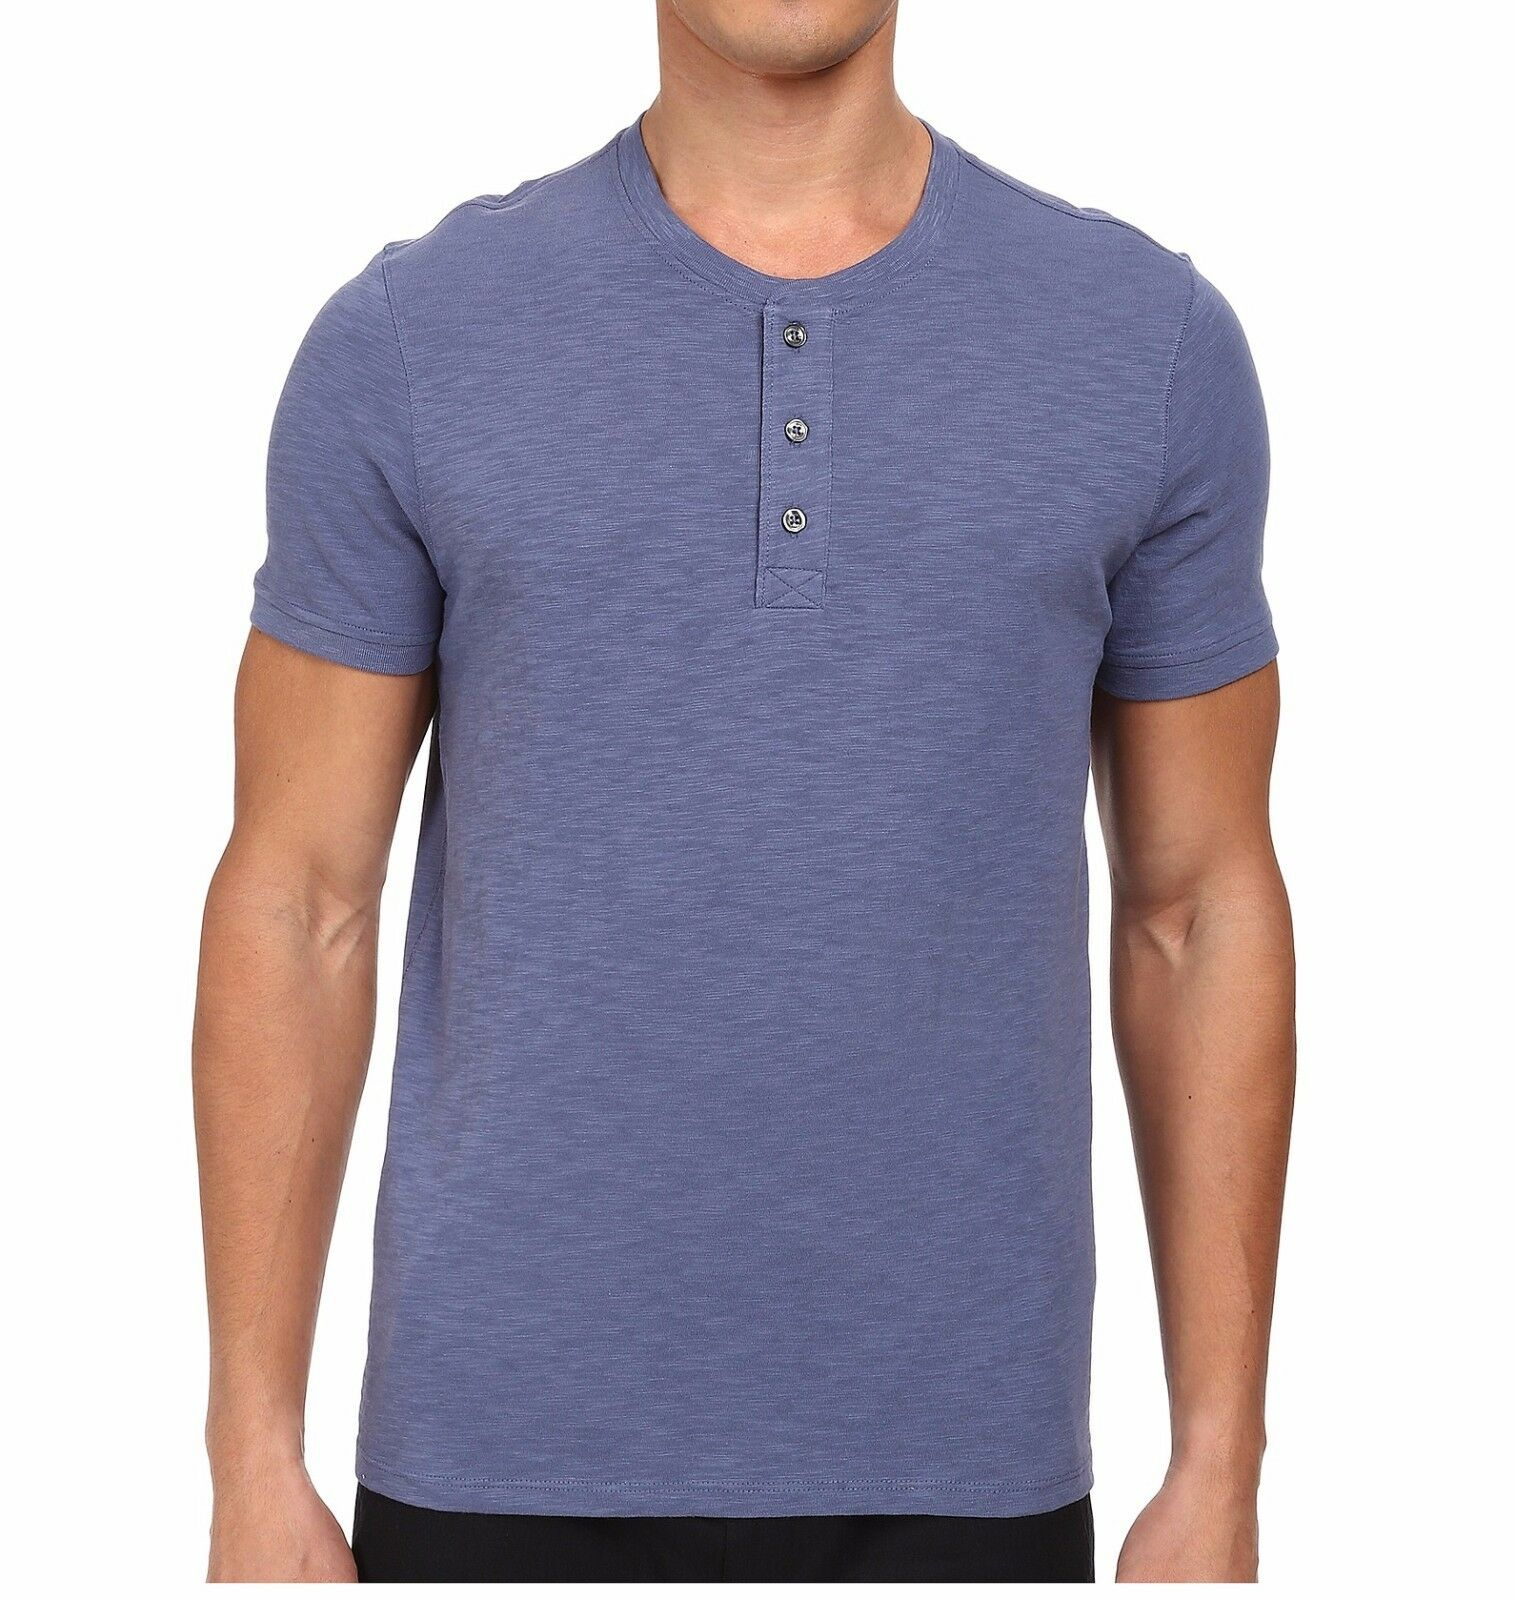 Vince Brand Men Blau Short Sleeve Slub Henley T-Shirt Plain Tee Top M22528871